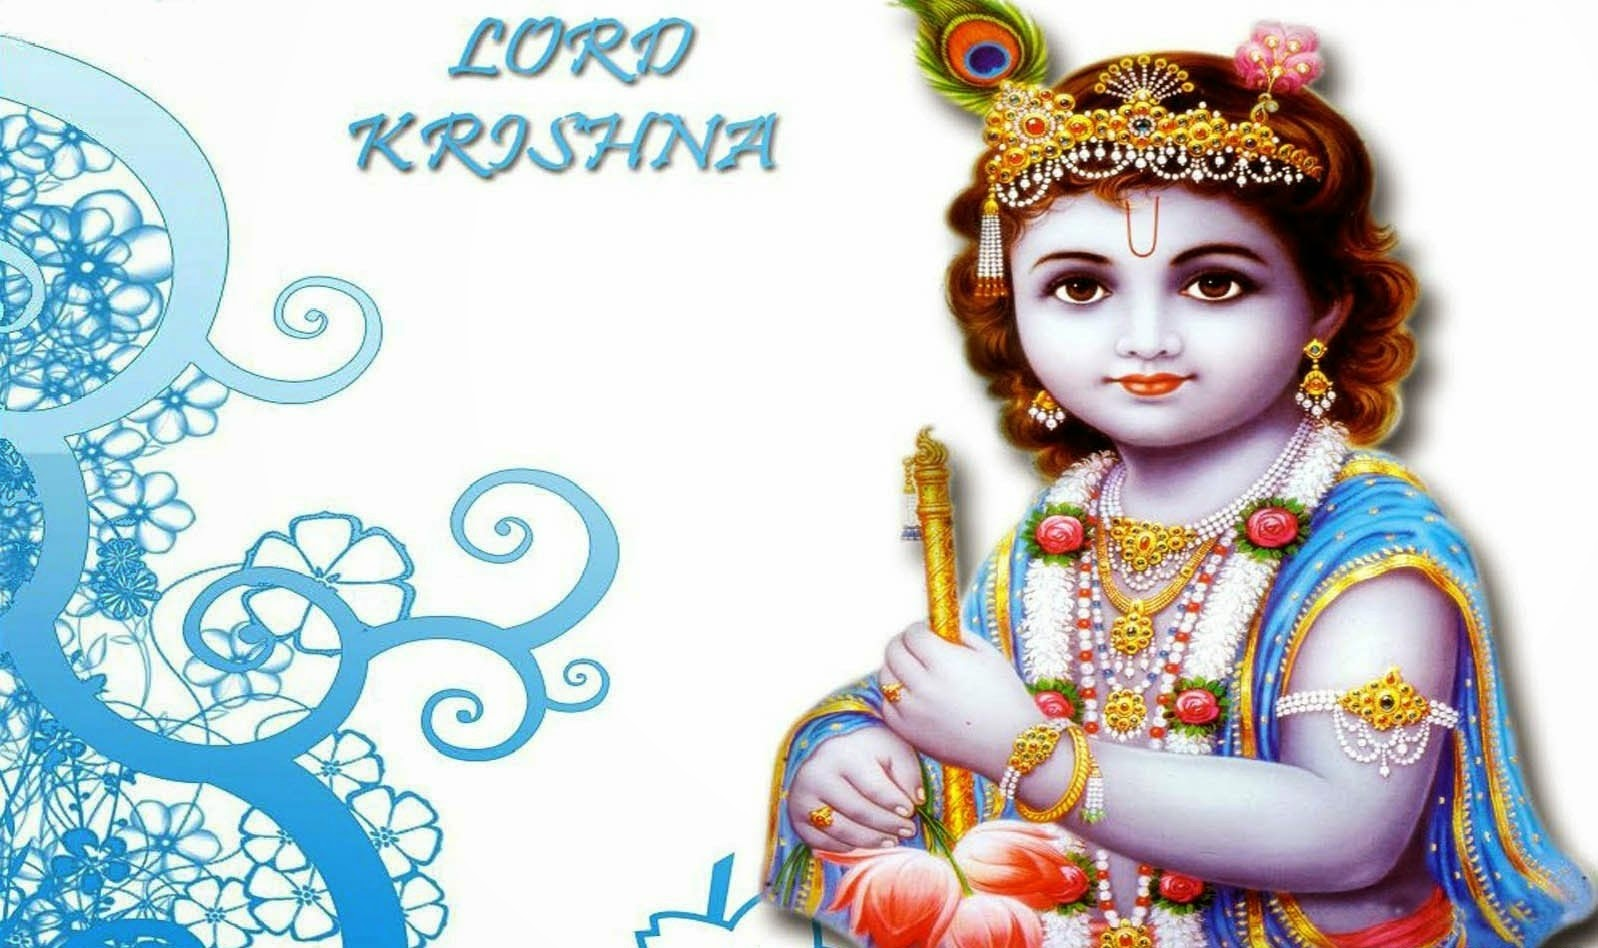 Happy Shri Krishna Janmashtami Quotes Wishes Sms Whatsapp Status Dp